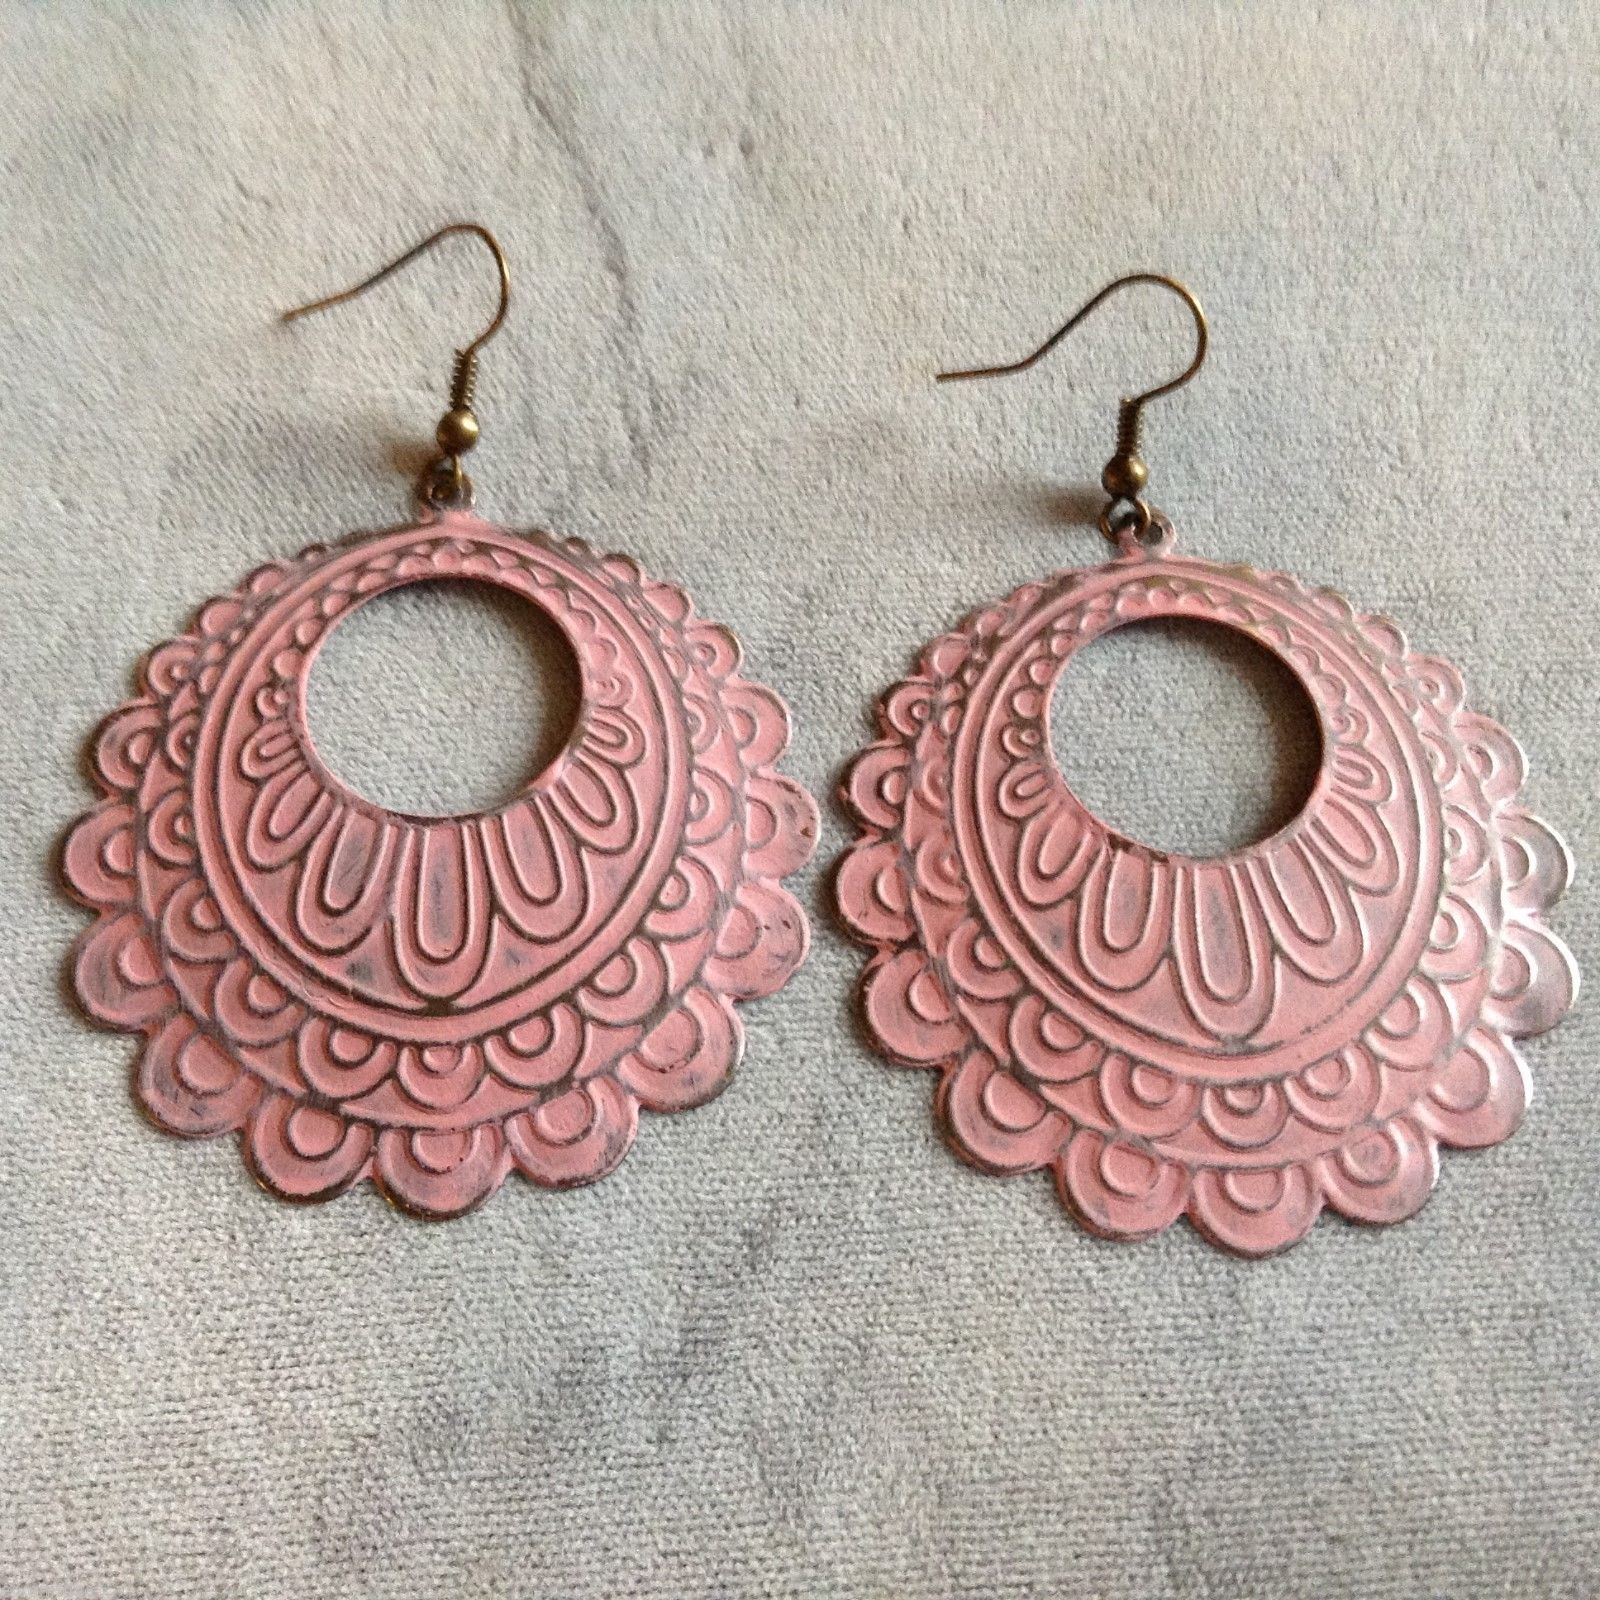 Gleeful Peacock Faded Light Pink Earrings, 4X4 inches